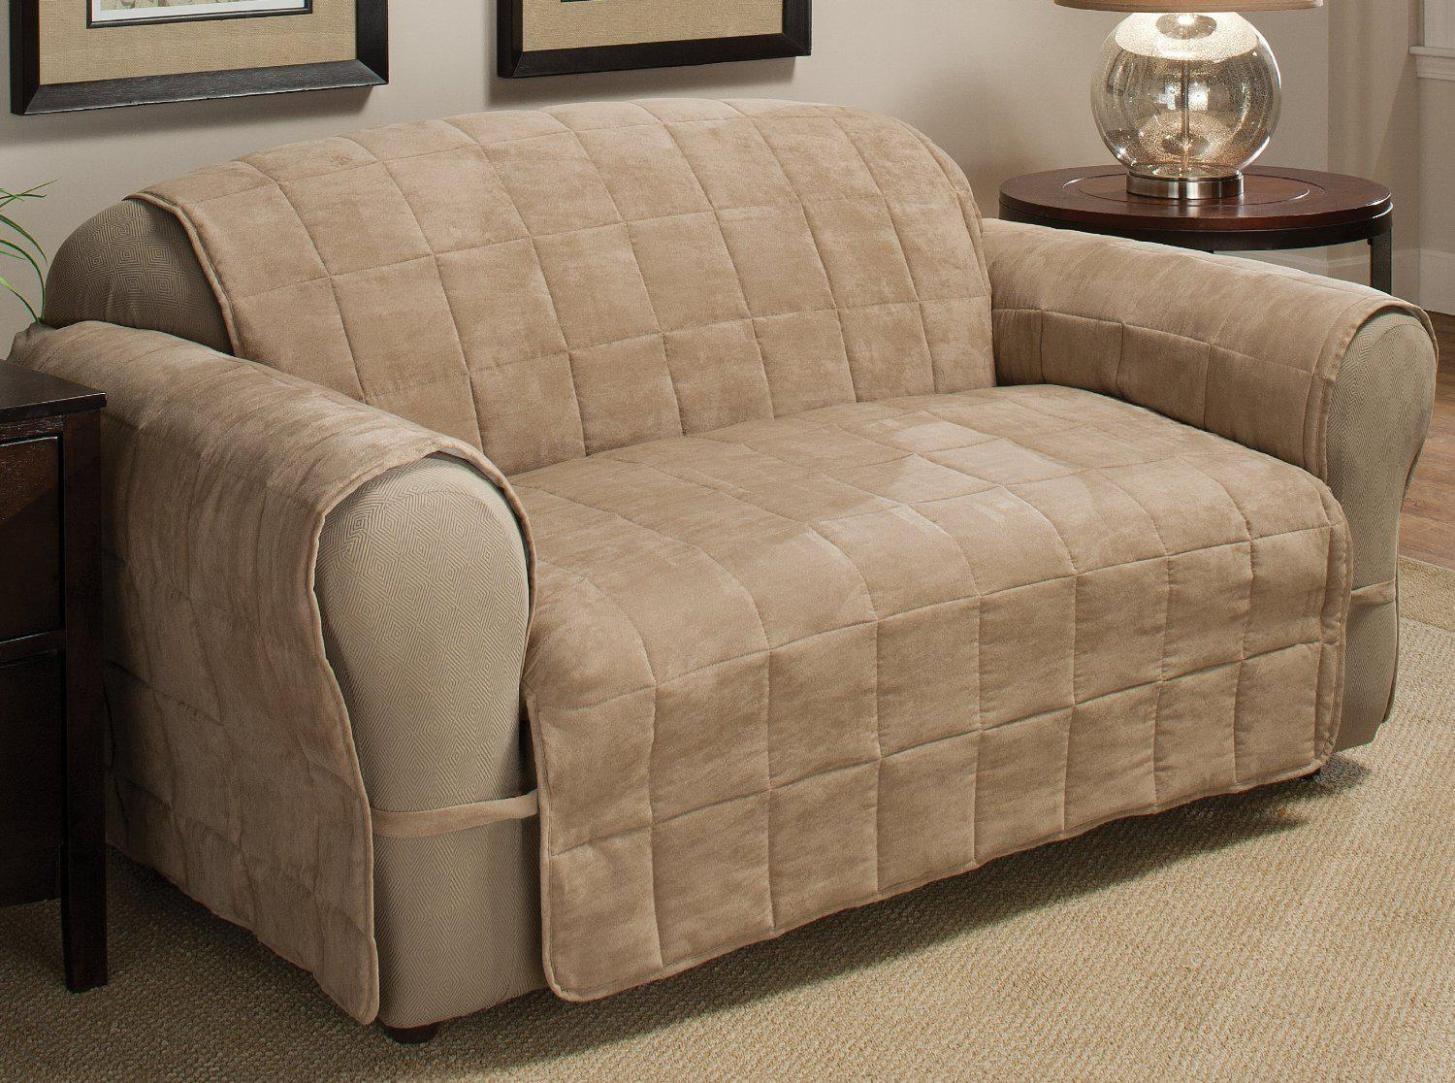 Sofas Center : Recliner Sofa Covers Couch Target Loveseat Awesome Intended For Recliner Sofa Slipcovers (View 6 of 20)